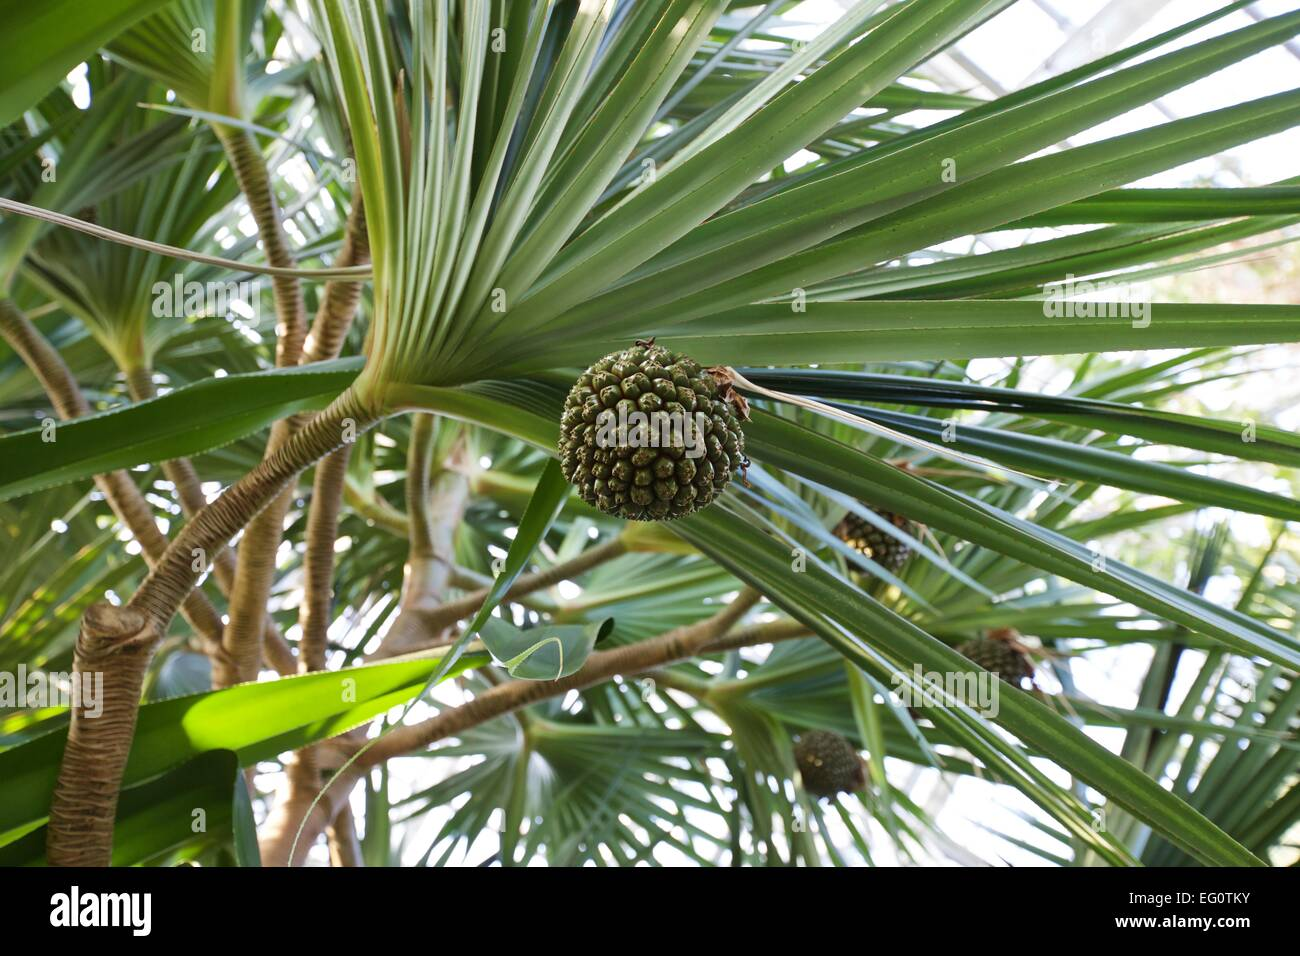 Pandanus fruit growing in the greenhouse at Fred Meijer Gardens in Grand Rapids, Michigan - Stock Image